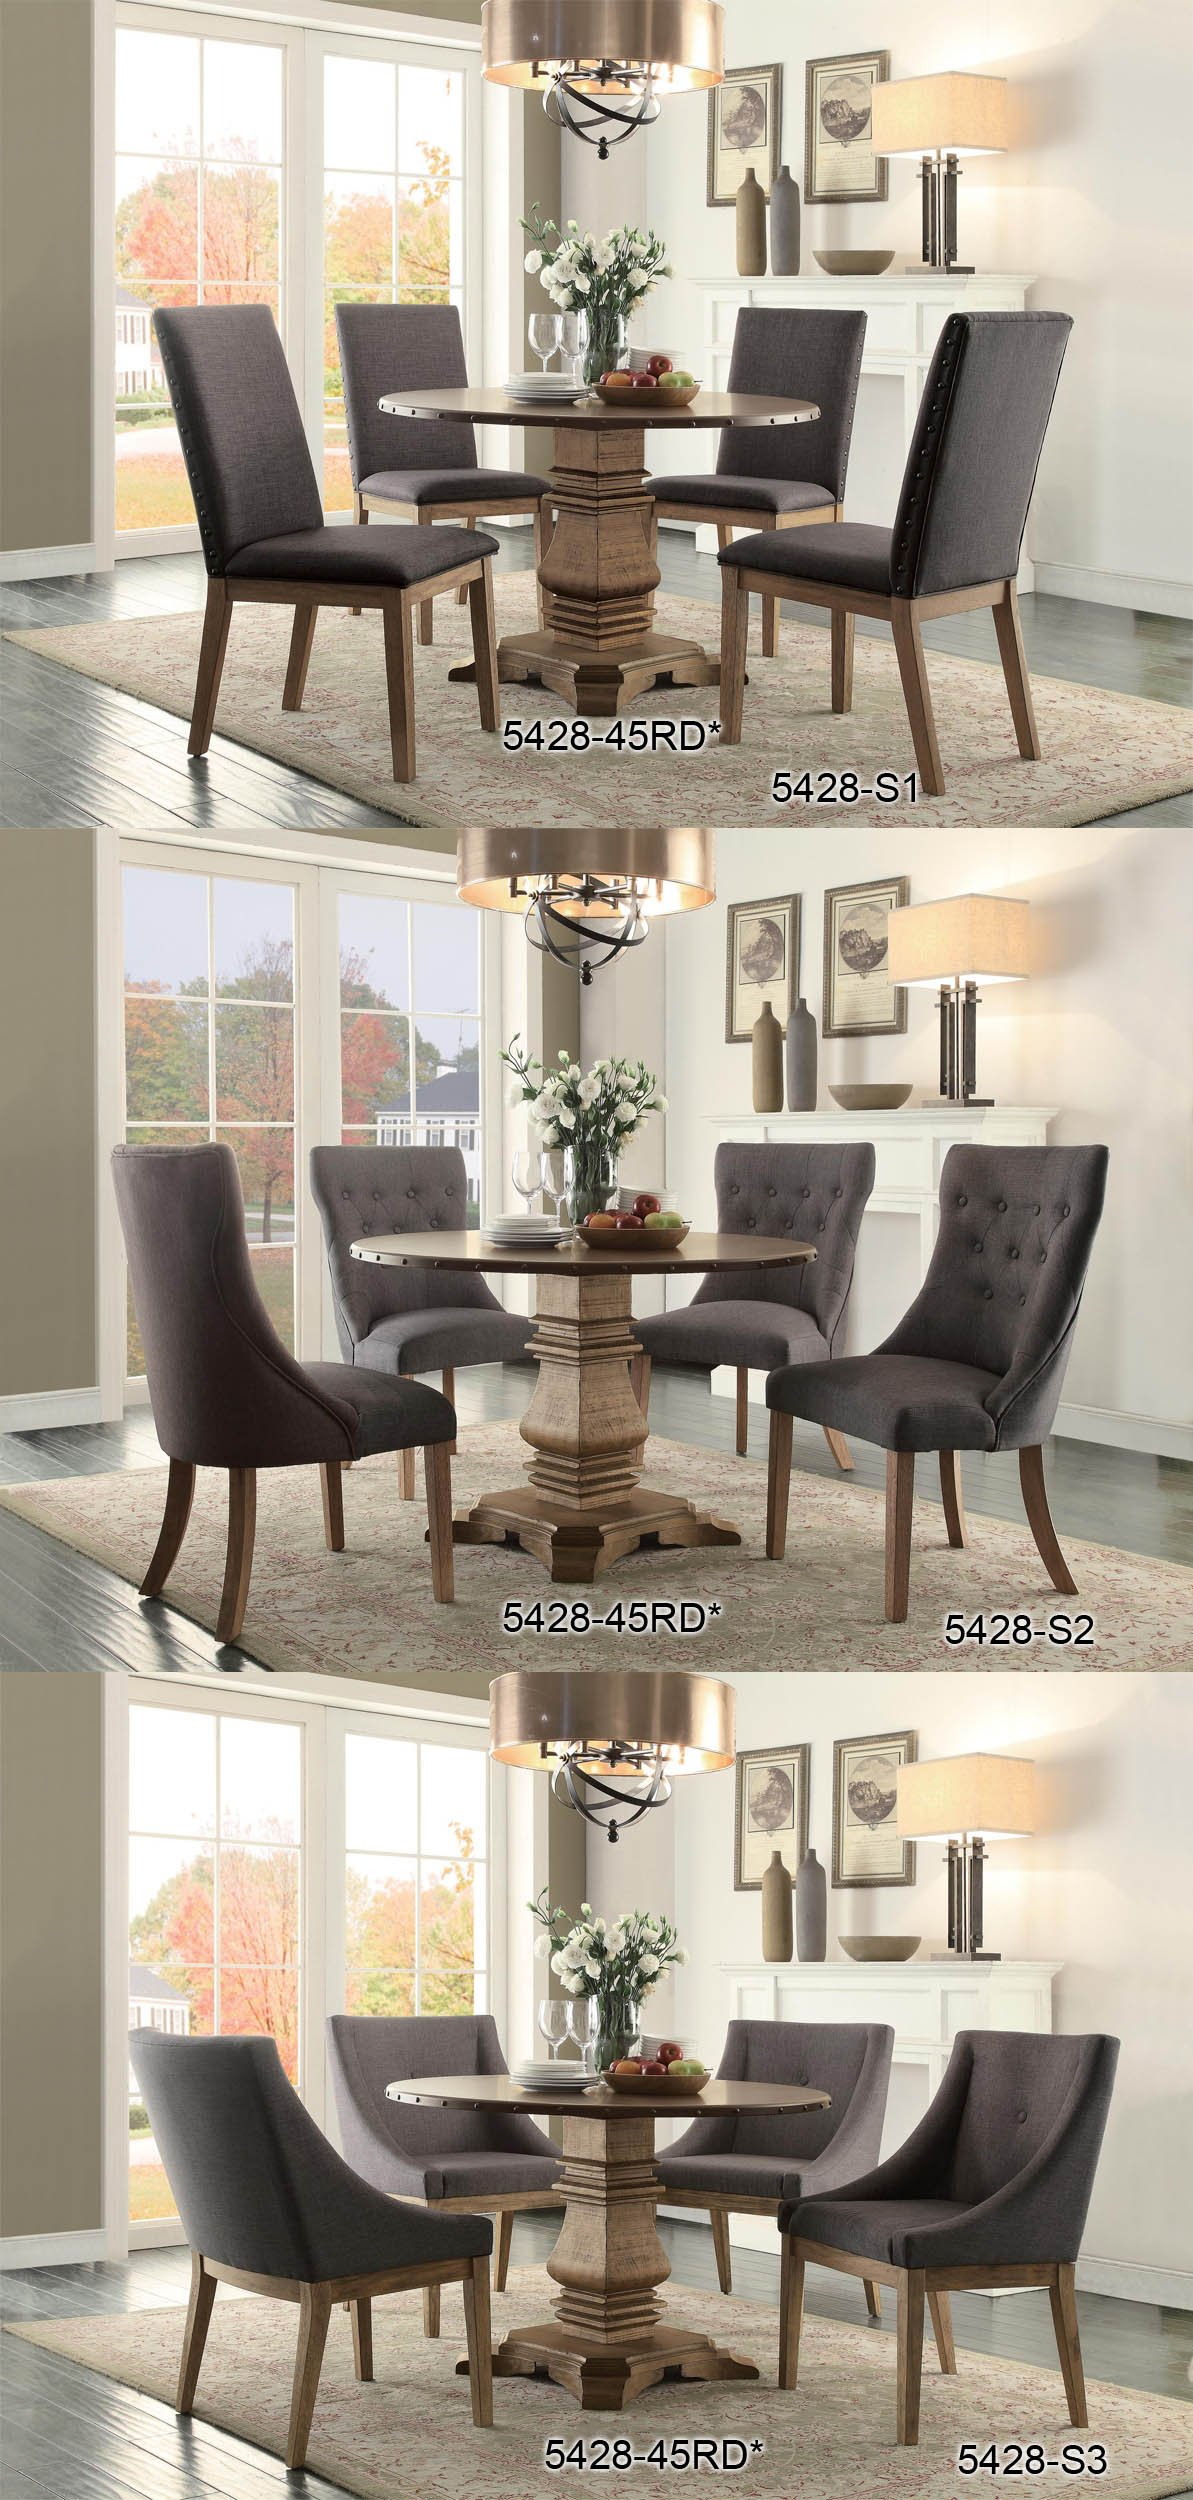 Homelegance Anna Claire 7-Piece Dining Set 84-inch Zinc Top Dining Table and 6 Button Tufted Wingback Chairs by Homelegance (Image #4)